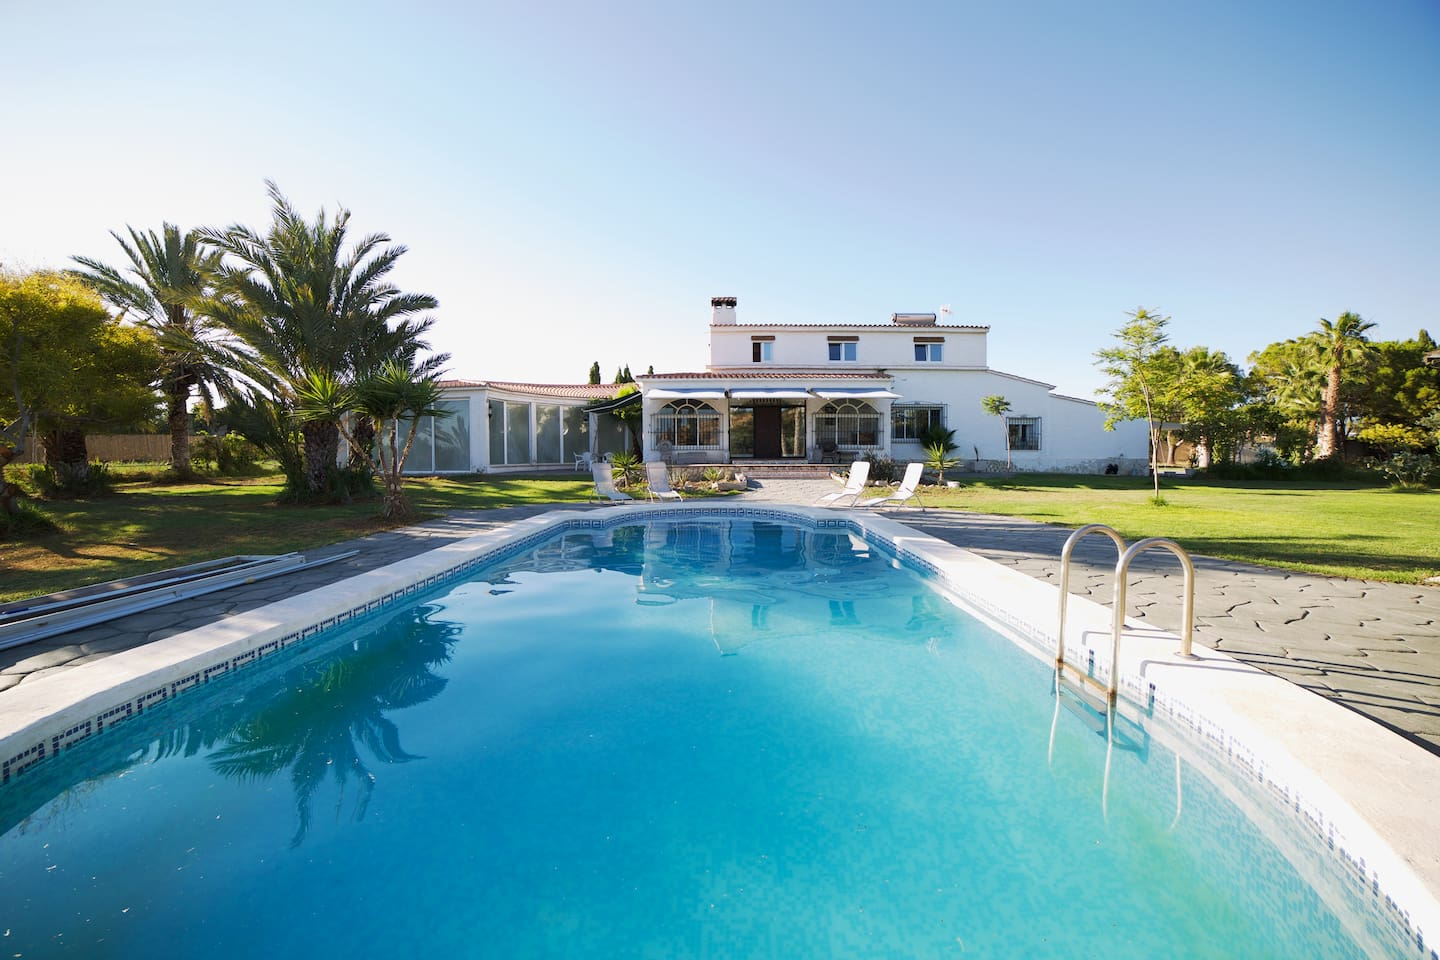 Indoor pool villa  Spacious Oasis Villa with Indoor Pool, Jacuzzi - Houses for Rent in ...